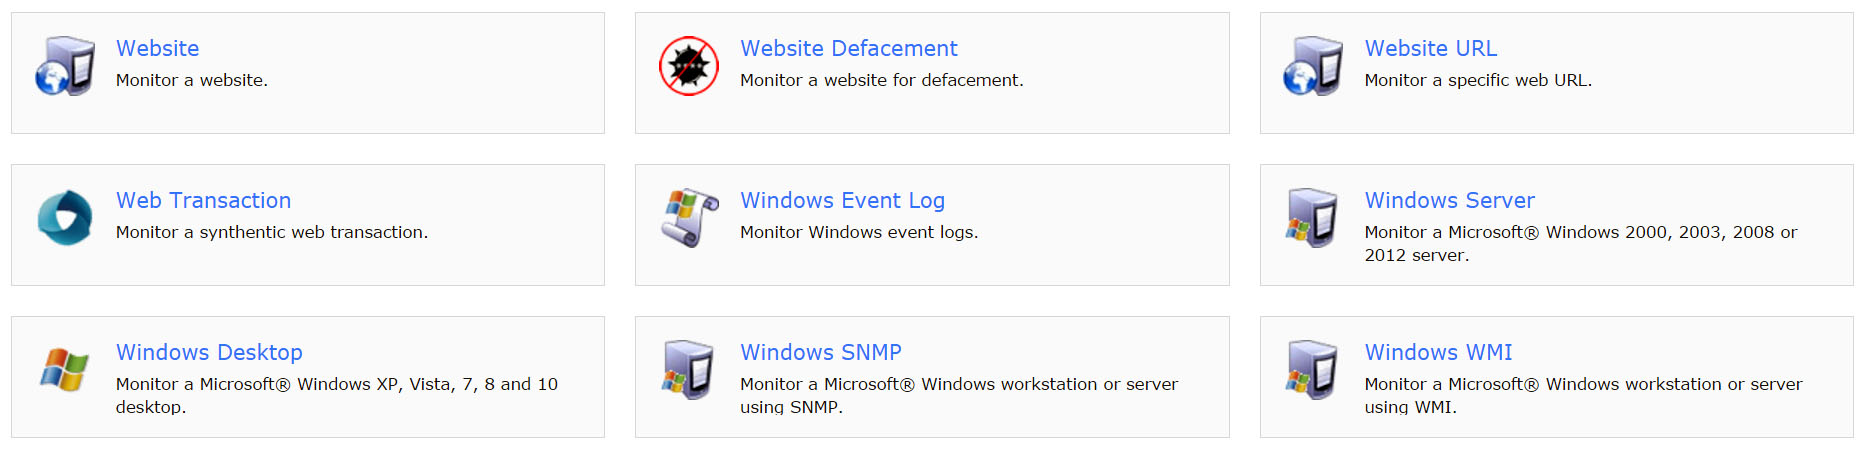 windowsservicemonitoring 1